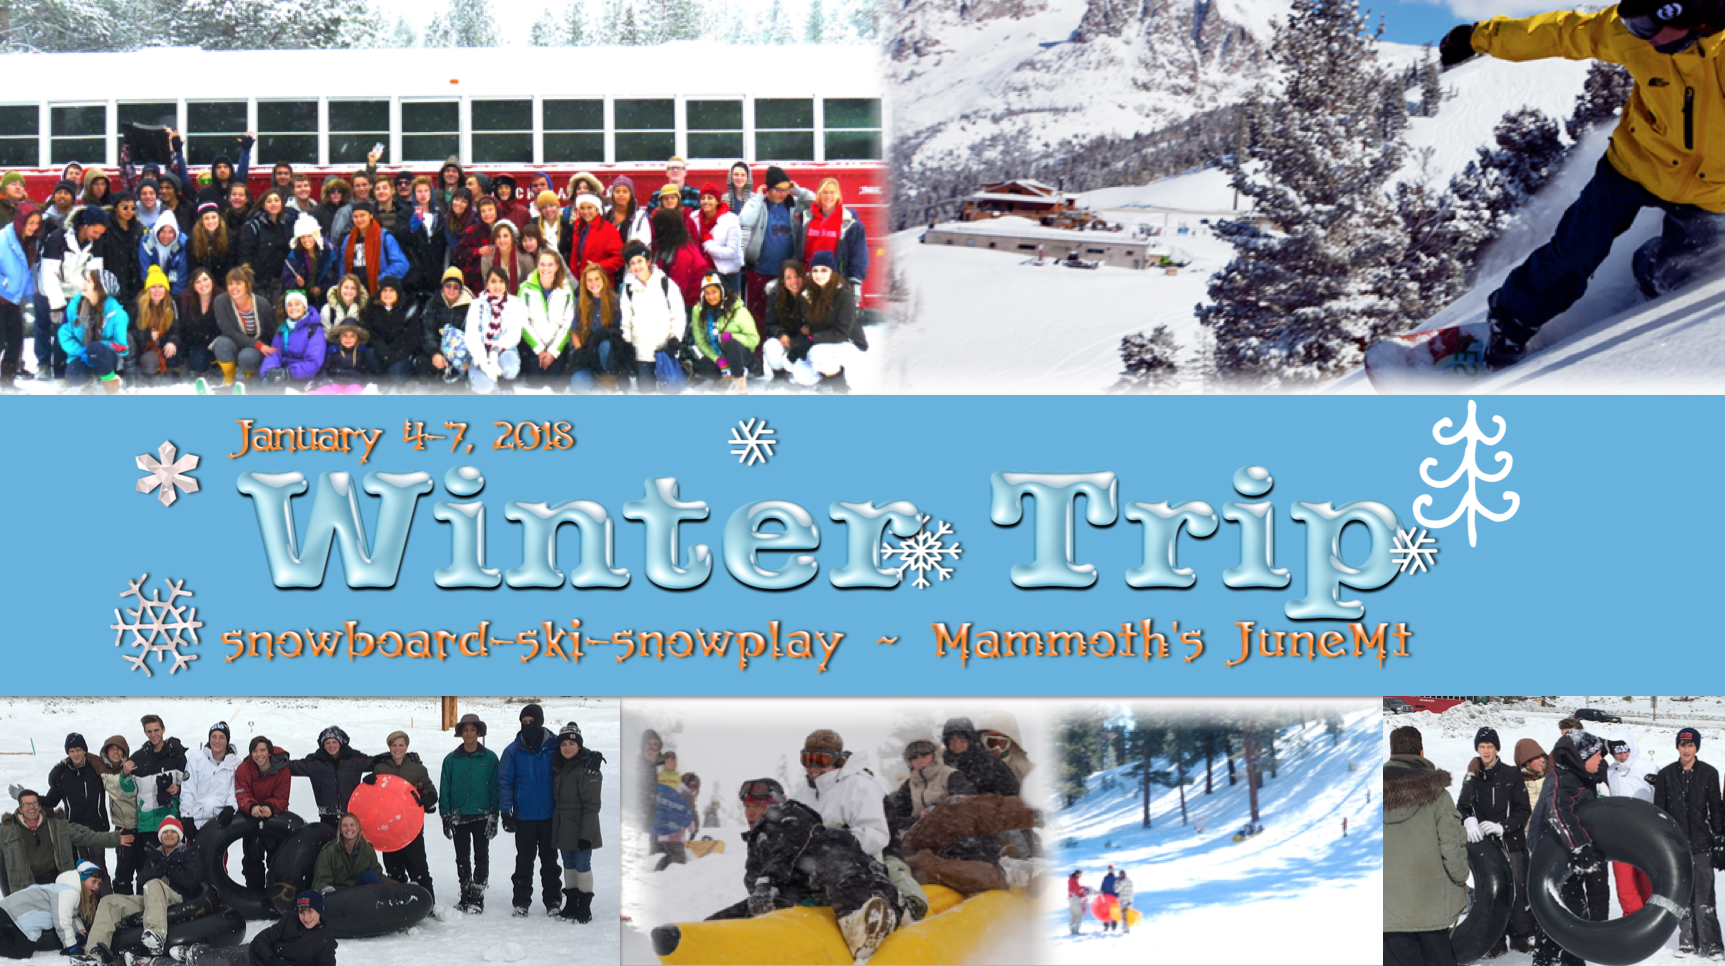 Winter trip banner ad 2018